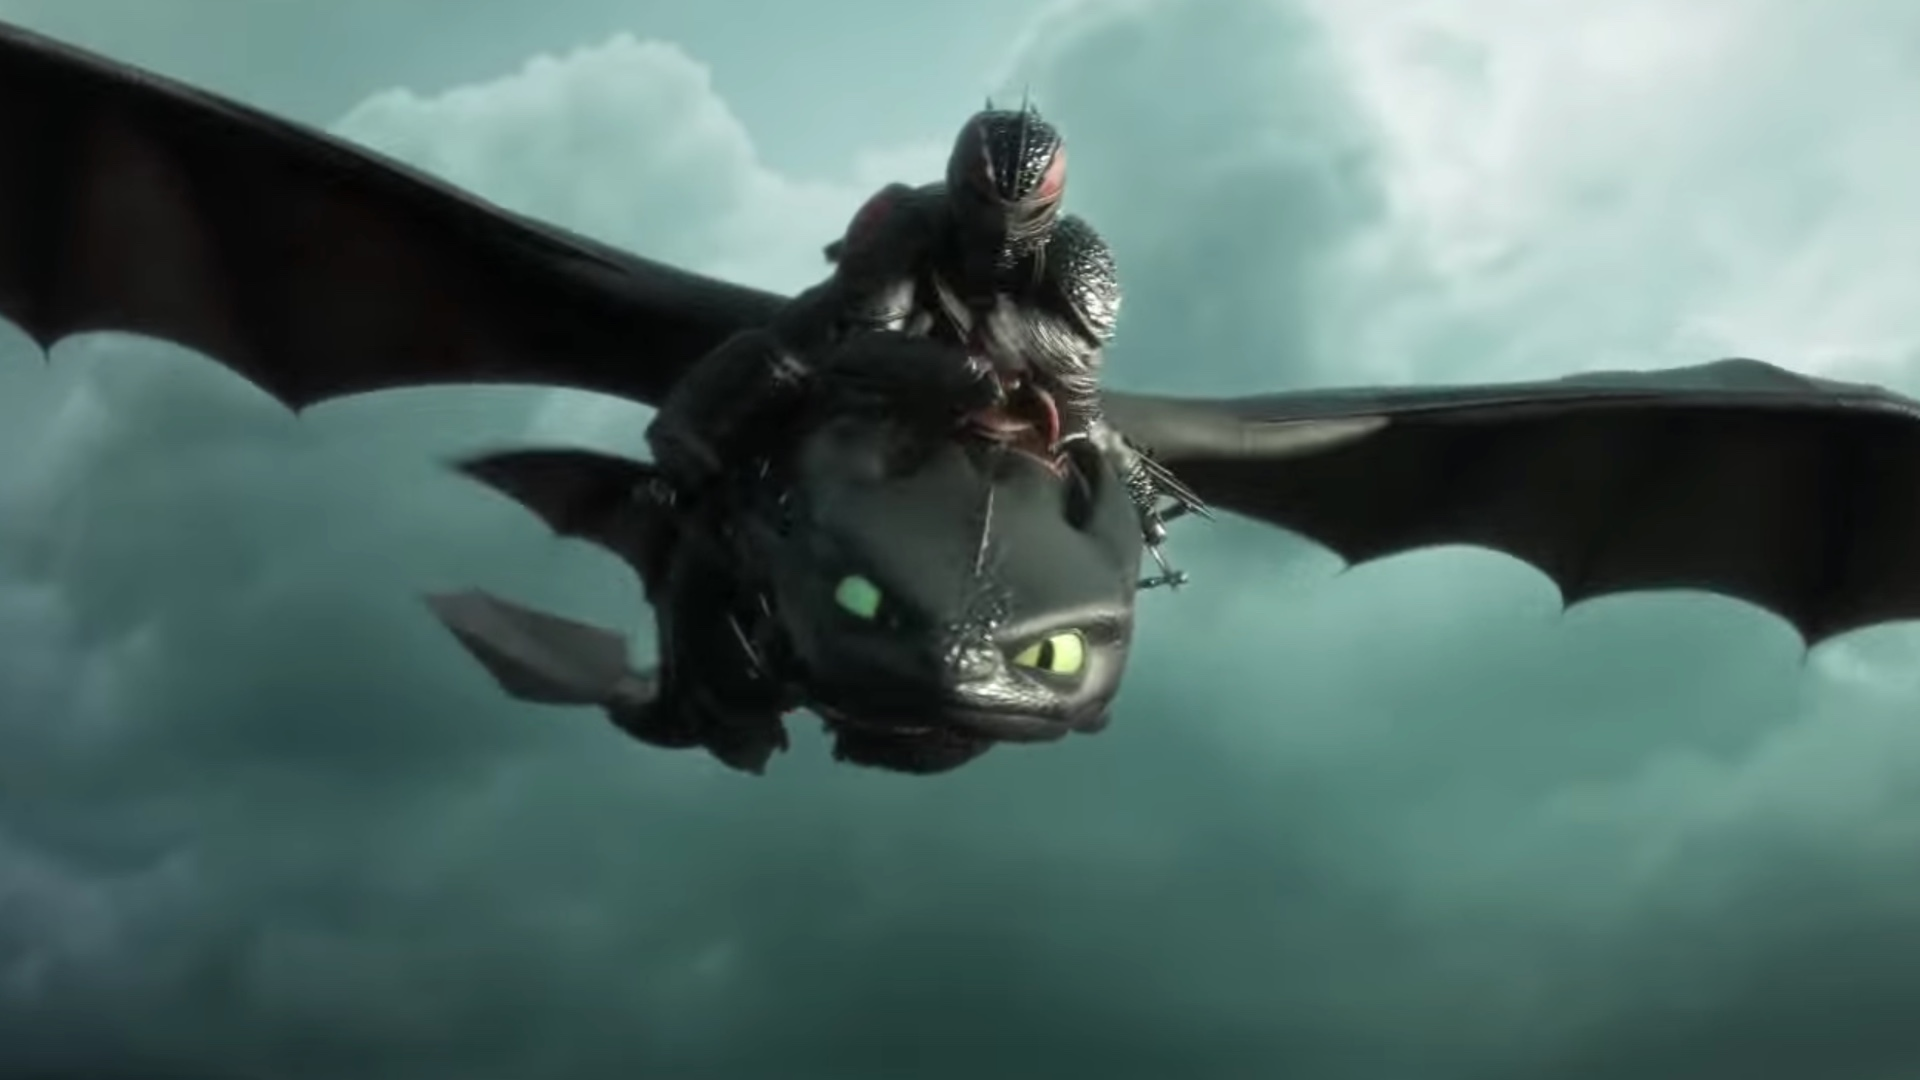 How To Train Your Dragon The Hidden World Director Dean Deblois On His Own Epic Journey Moviefone